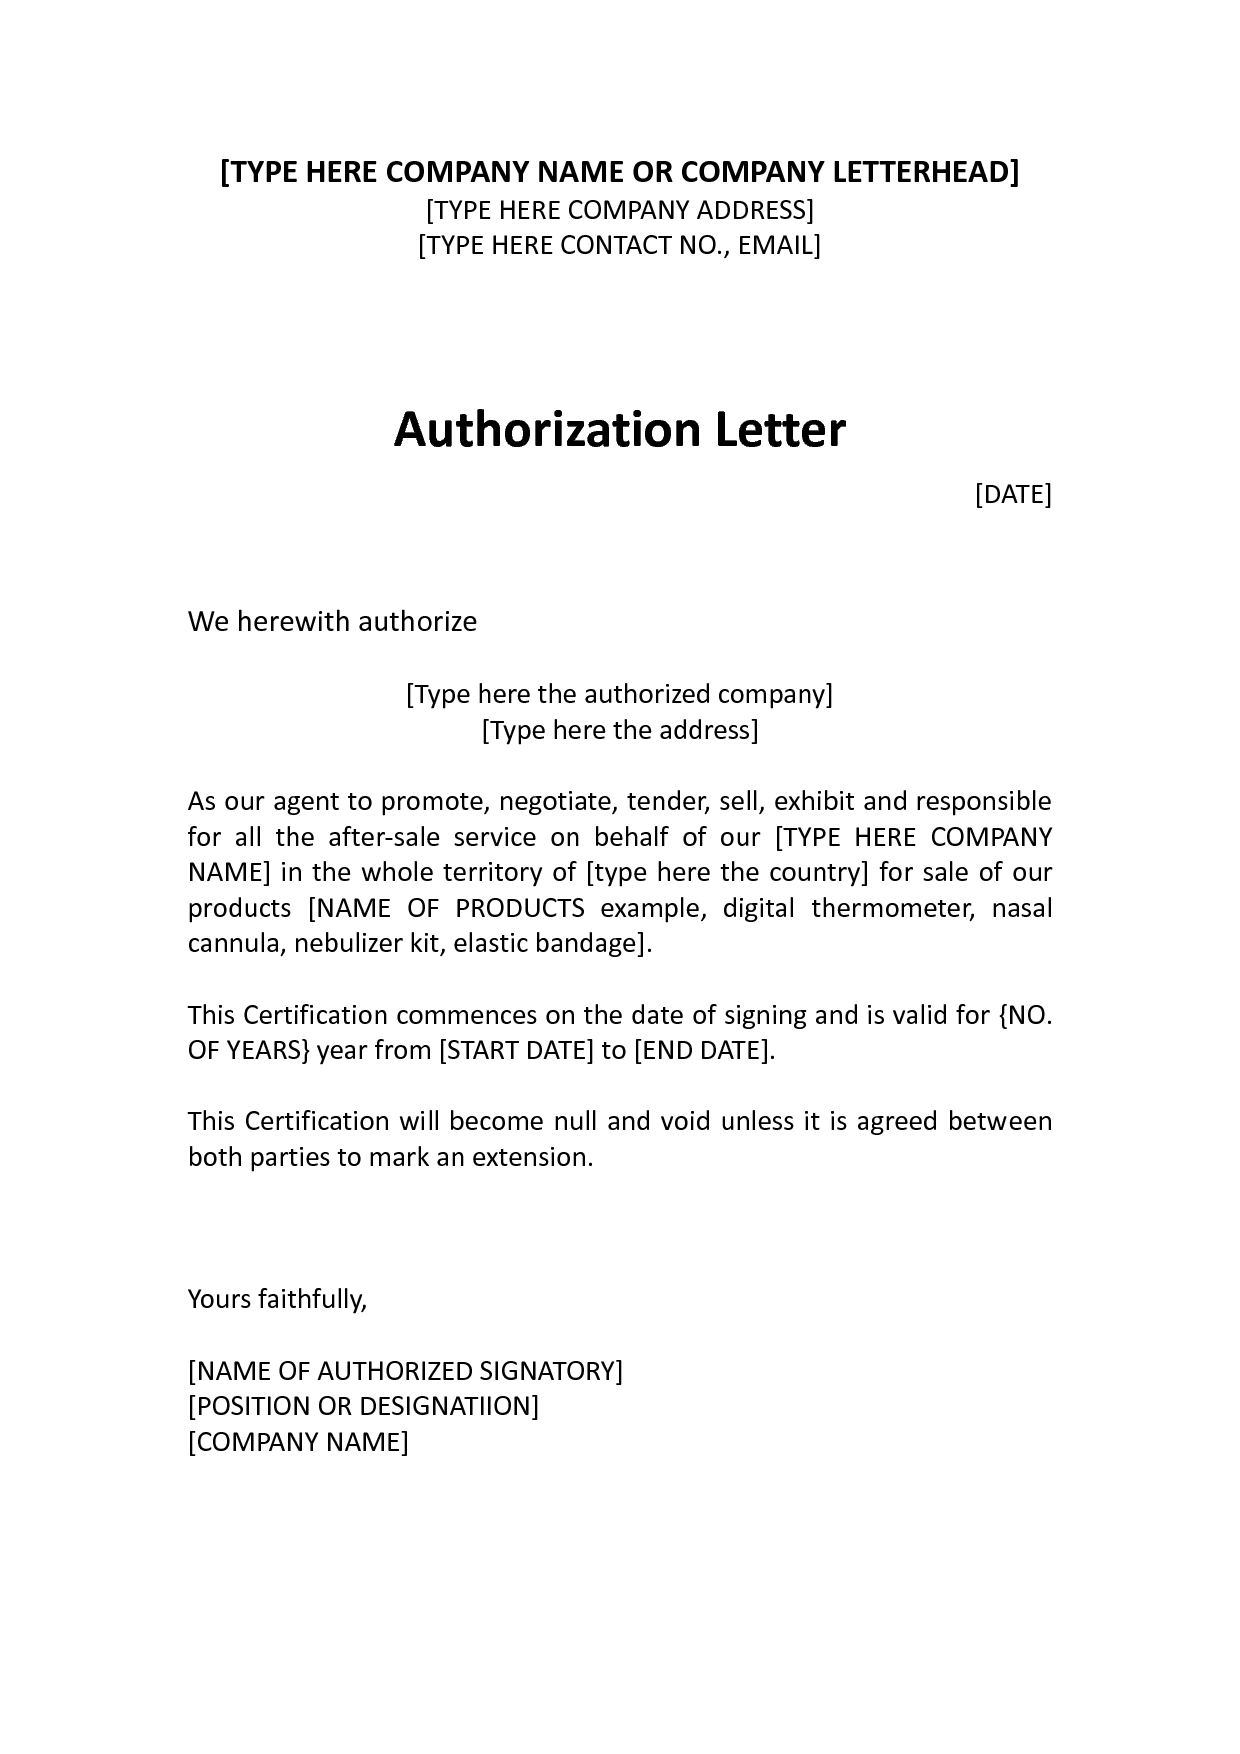 Formal Eviction Letter Template - Authorization Distributor Letter Sample Distributor Dealer